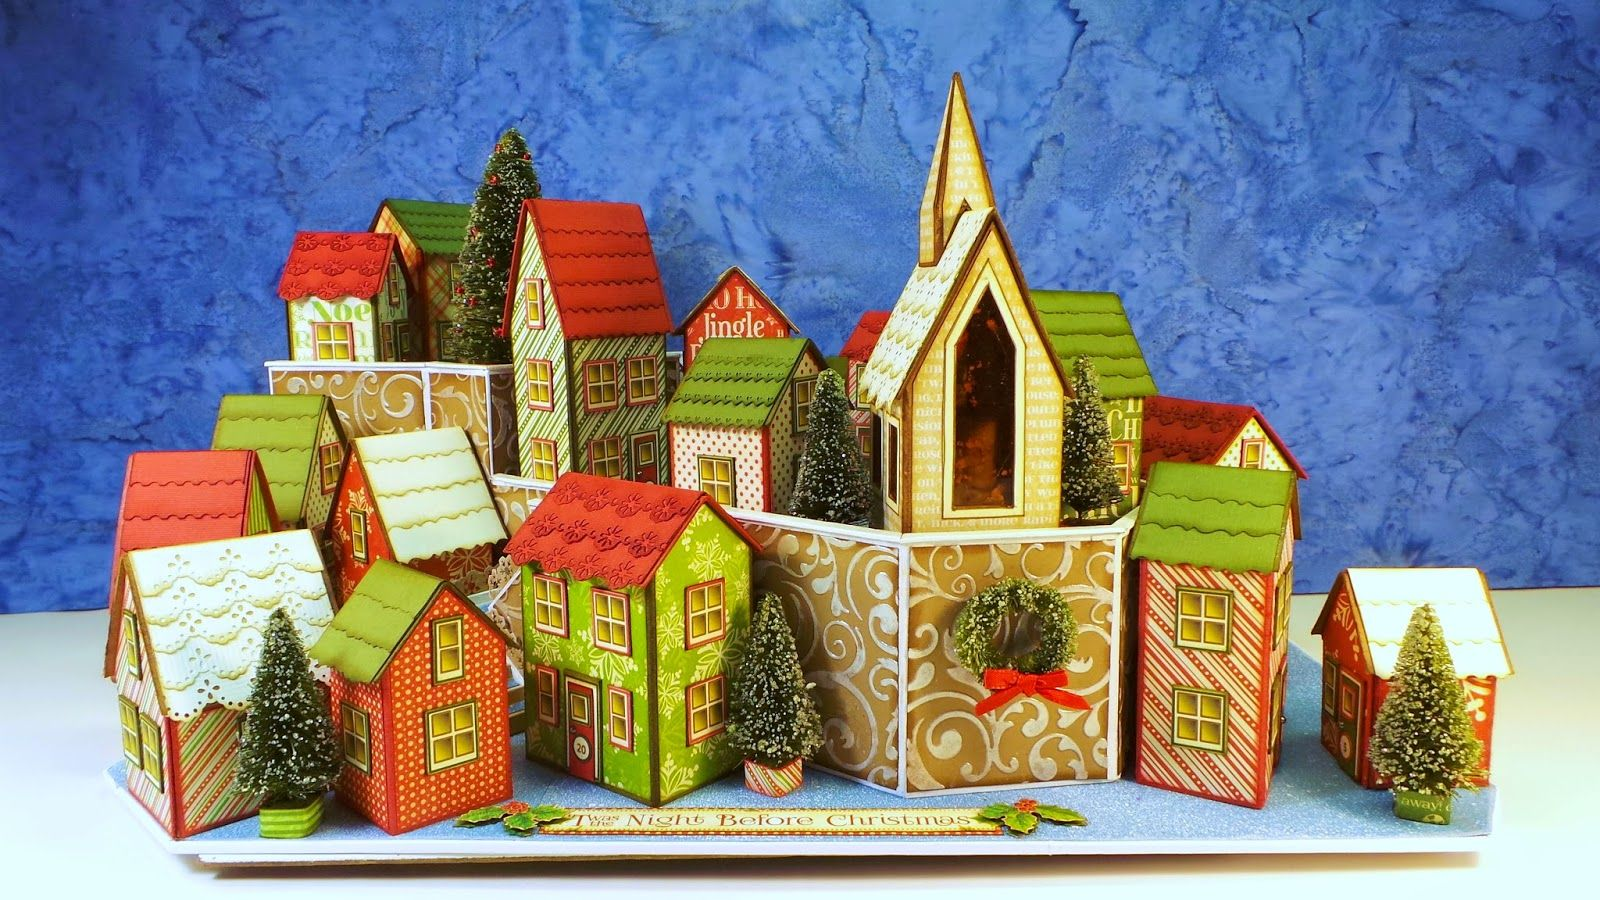 Craft Knife Chronicles Twas The Night Before Christmas Village